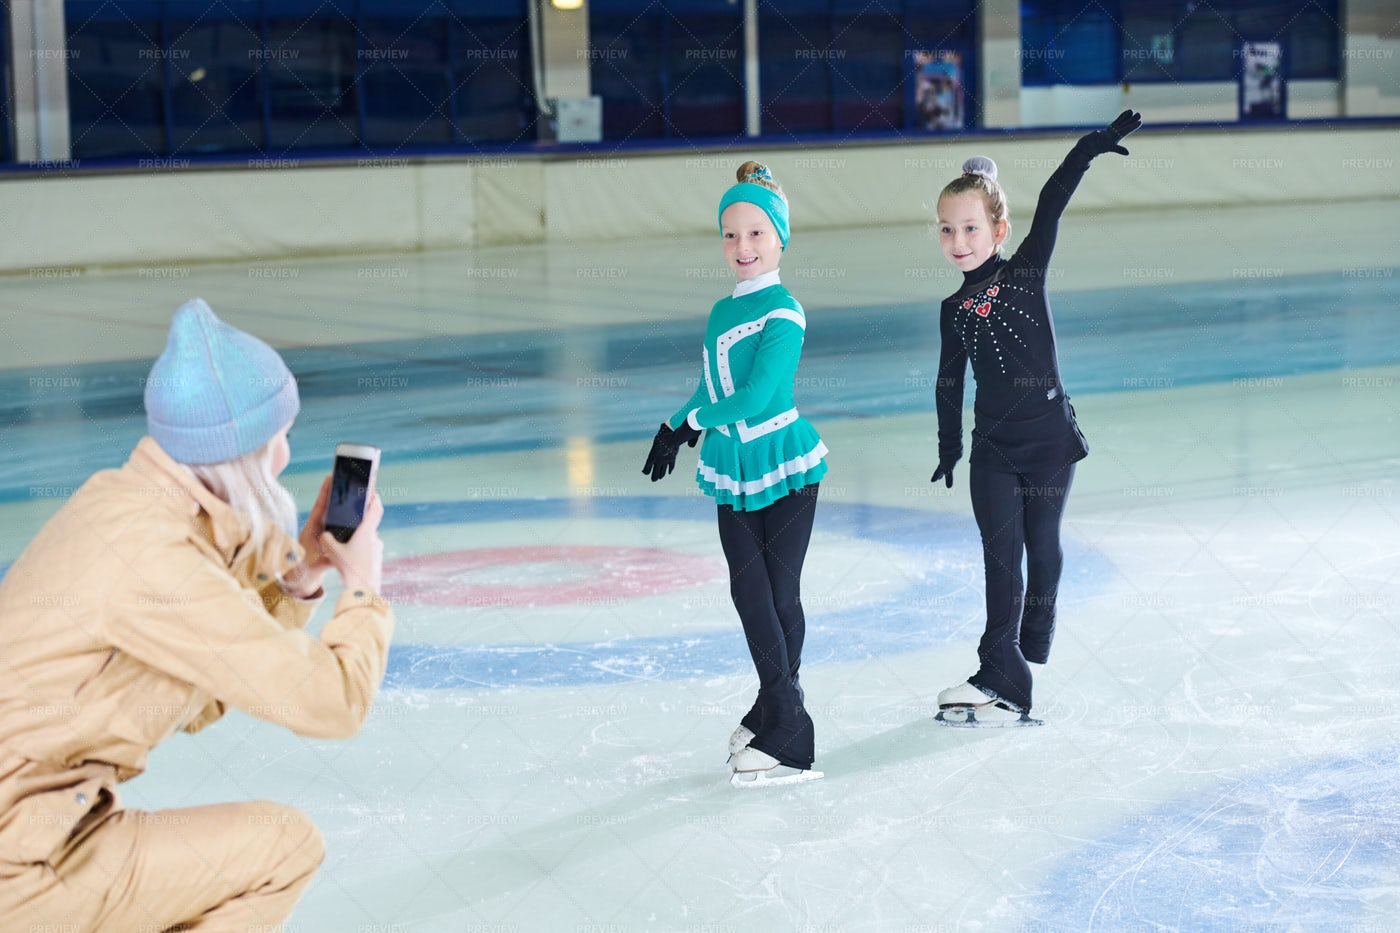 Woman Taking Photo Of Ice-Skaters: Stock Photos